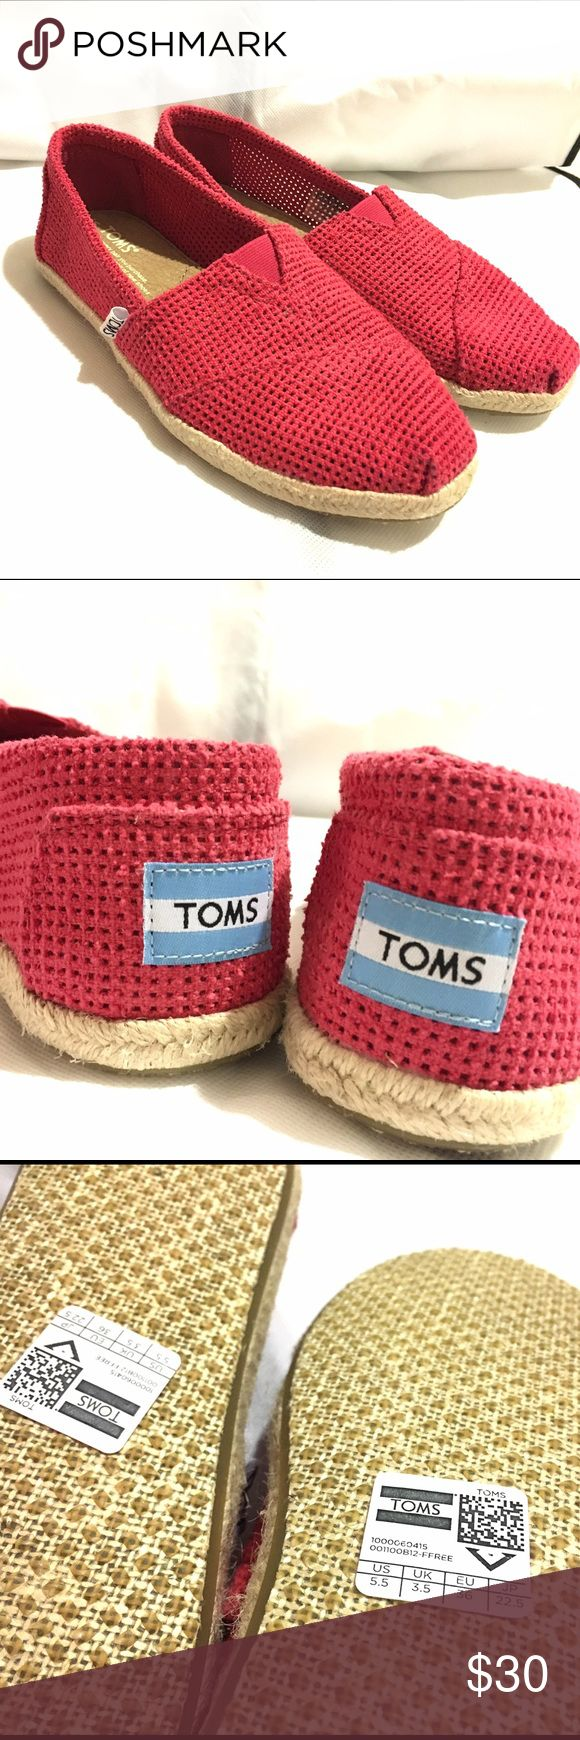 Brand new red TOMS Espadrilles with rope sole! Tags are still on. Never got a chance to wear them. In brand new condition. Super light and comfortable like all the TOMS :) TOMS Shoes Flats & Loafers